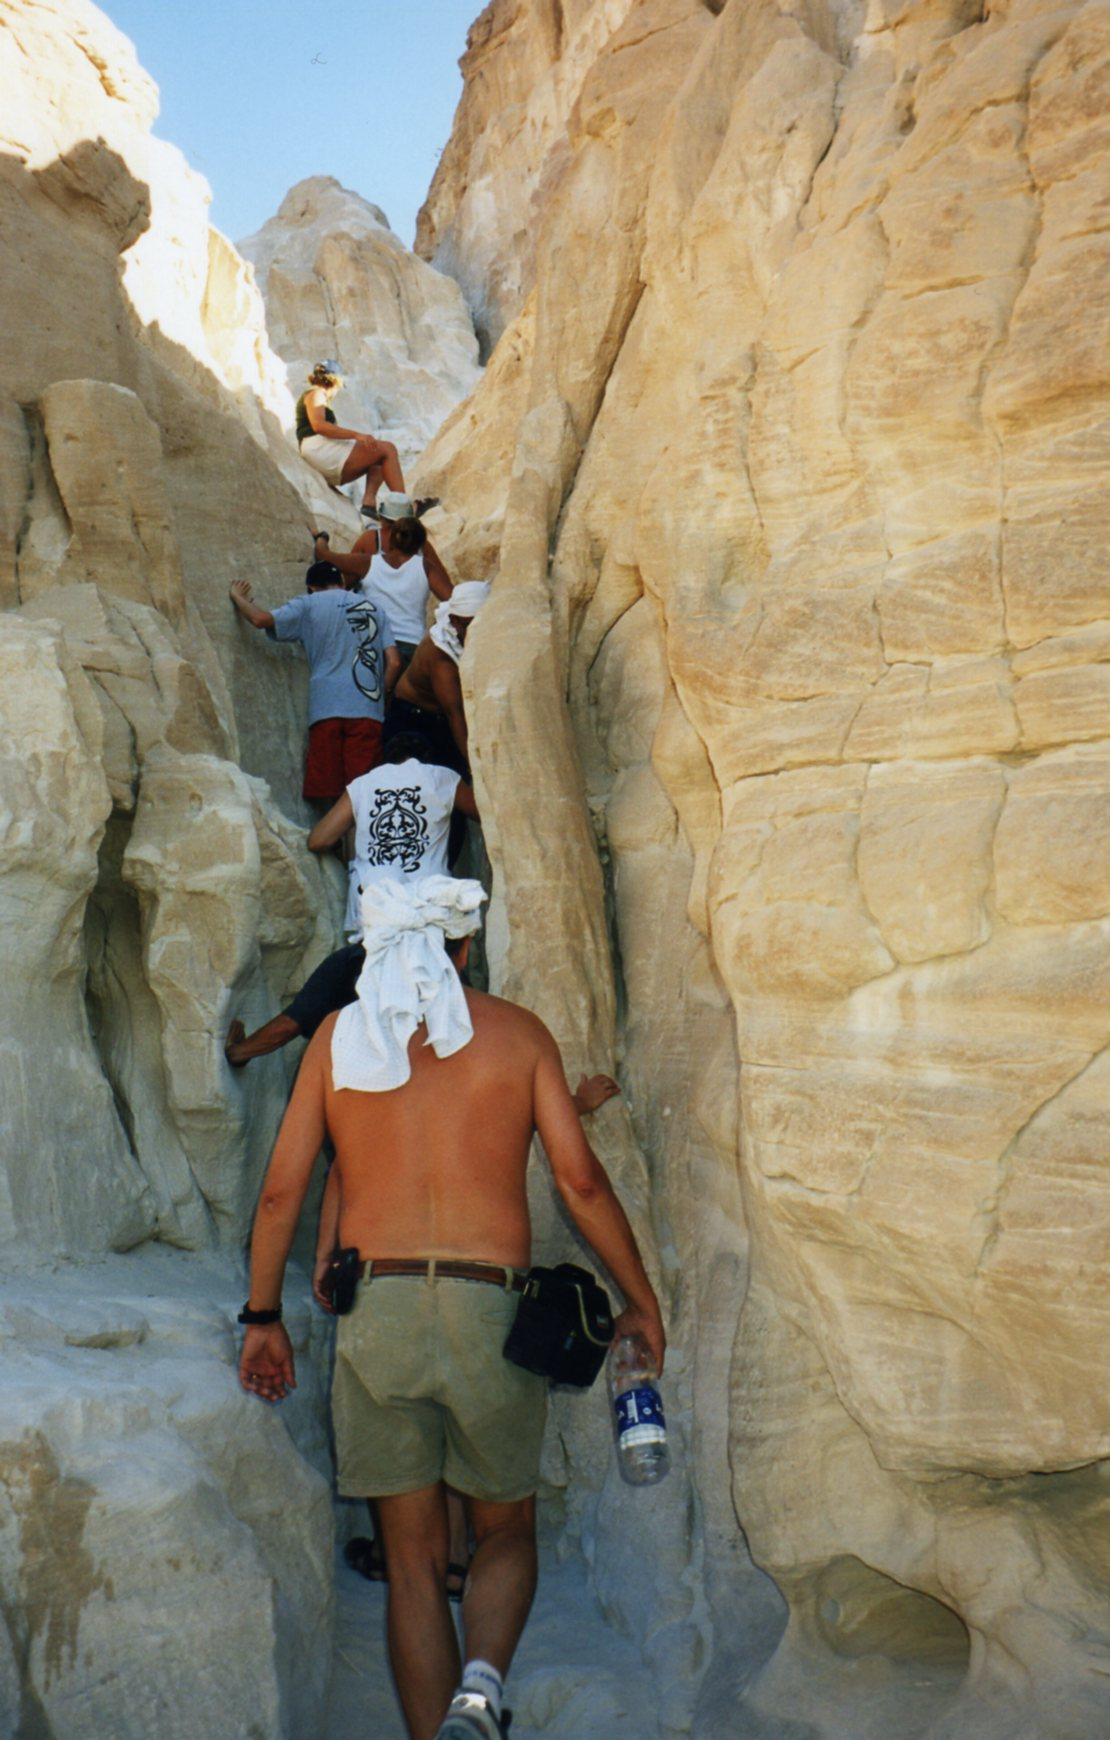 Climbing up a crevice at the White Canyon